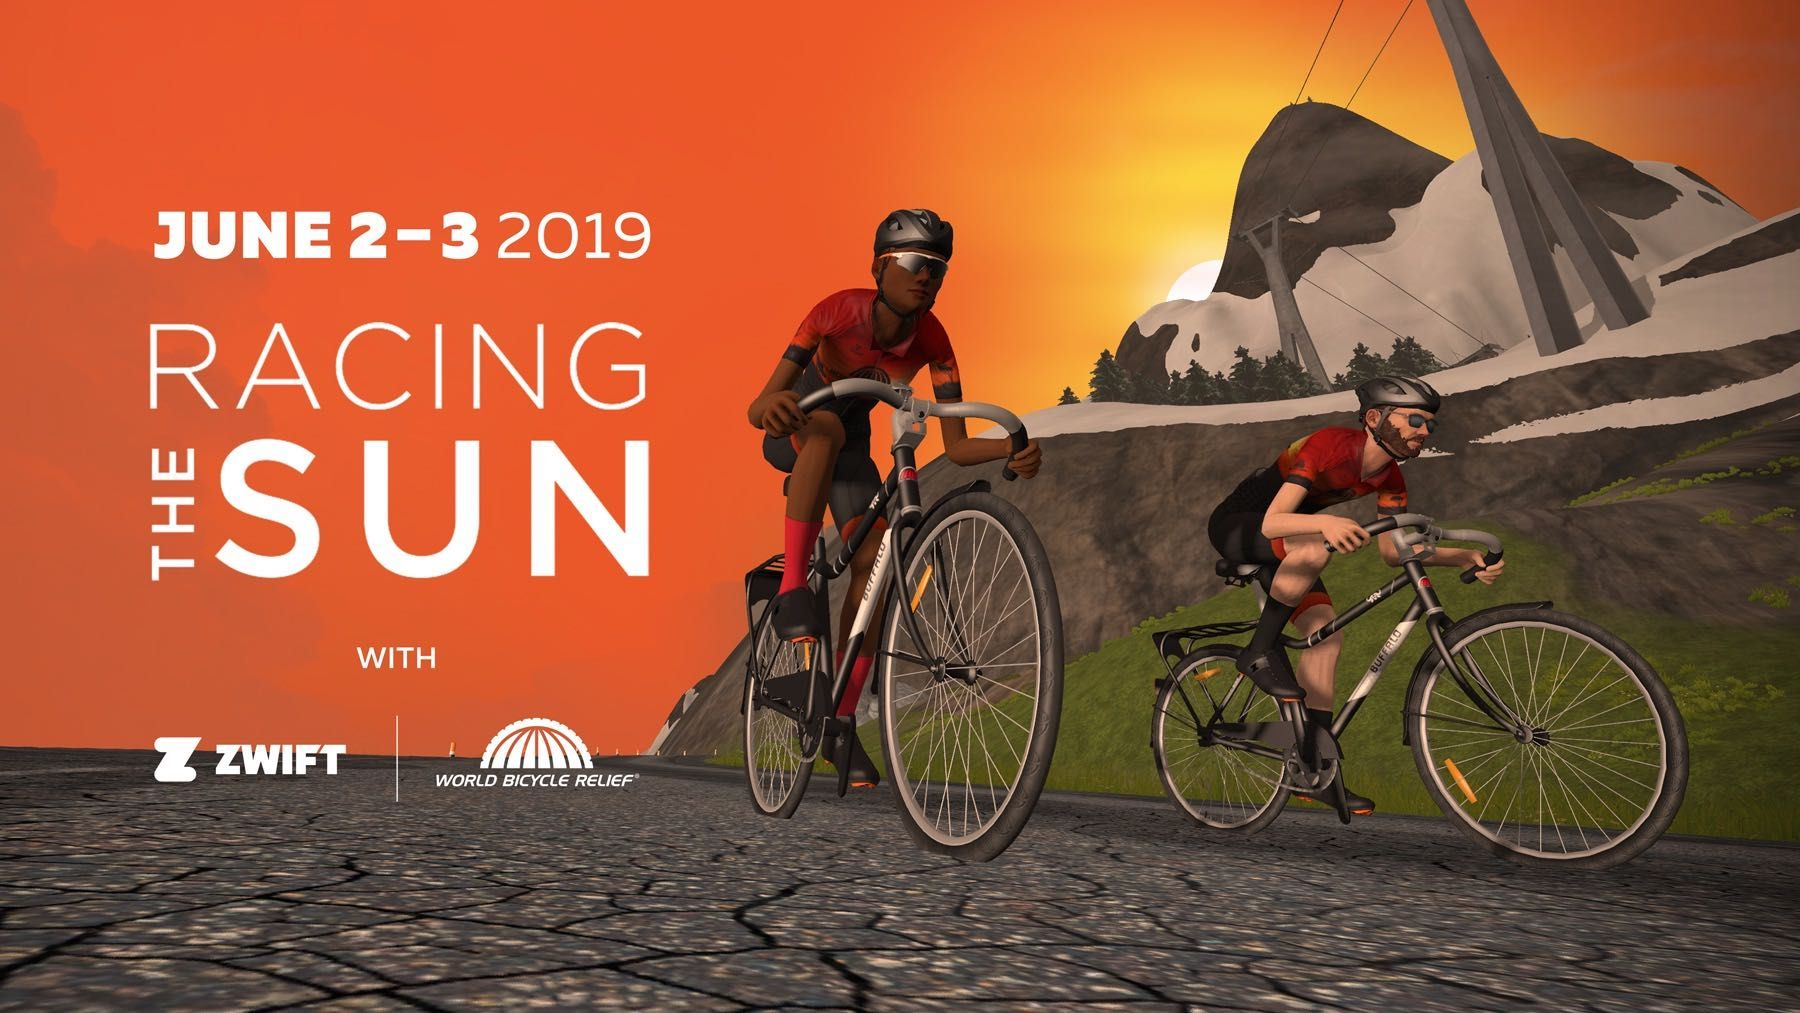 Zwift to Host 'Racing the Sun' Charity Rides for World